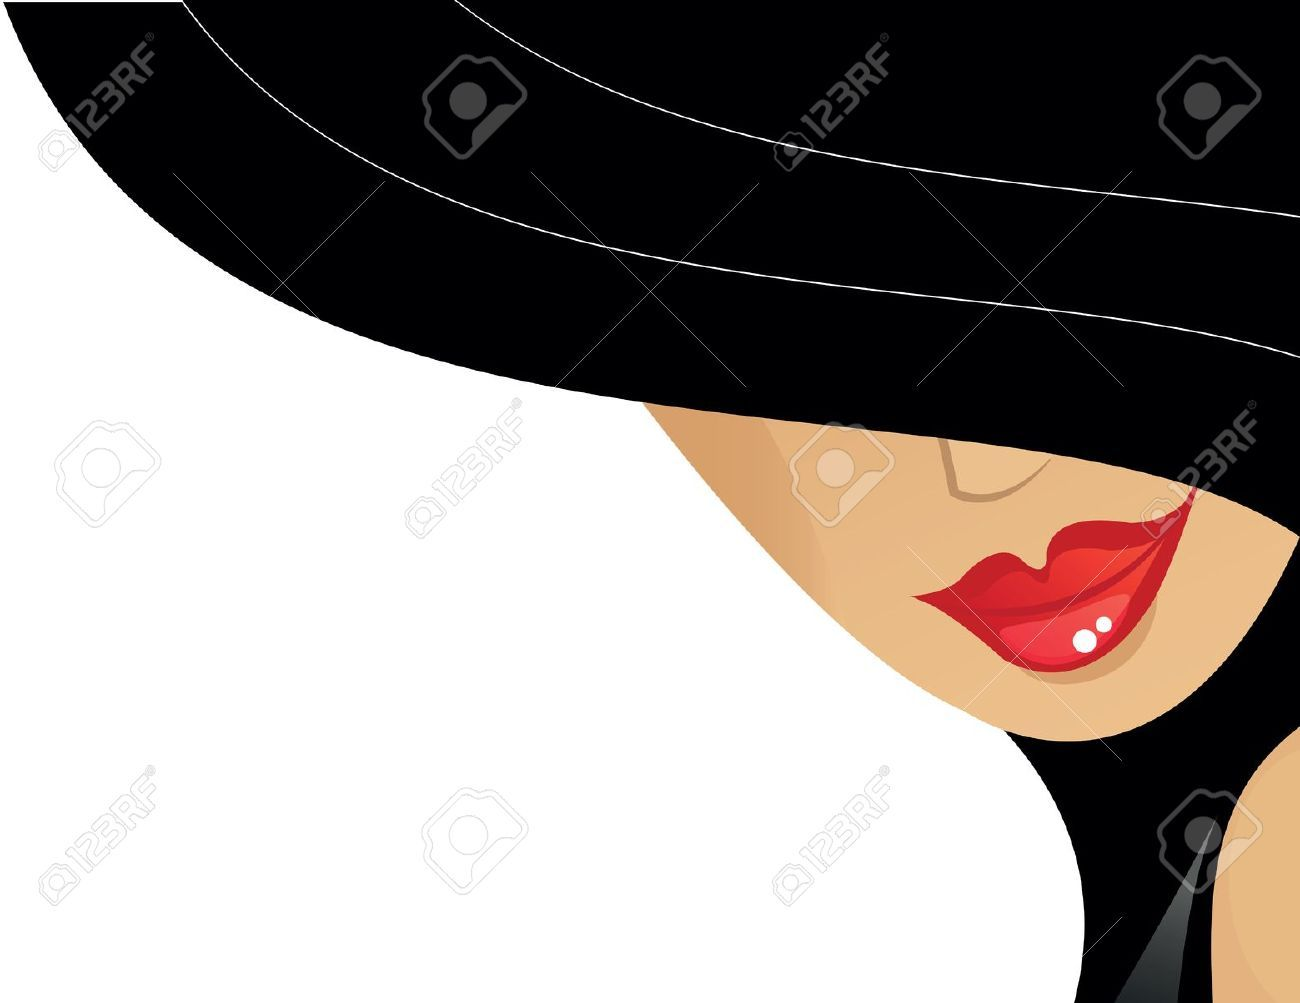 Women With Black Hat And Red Lips Royalty Free Cliparts Vectors